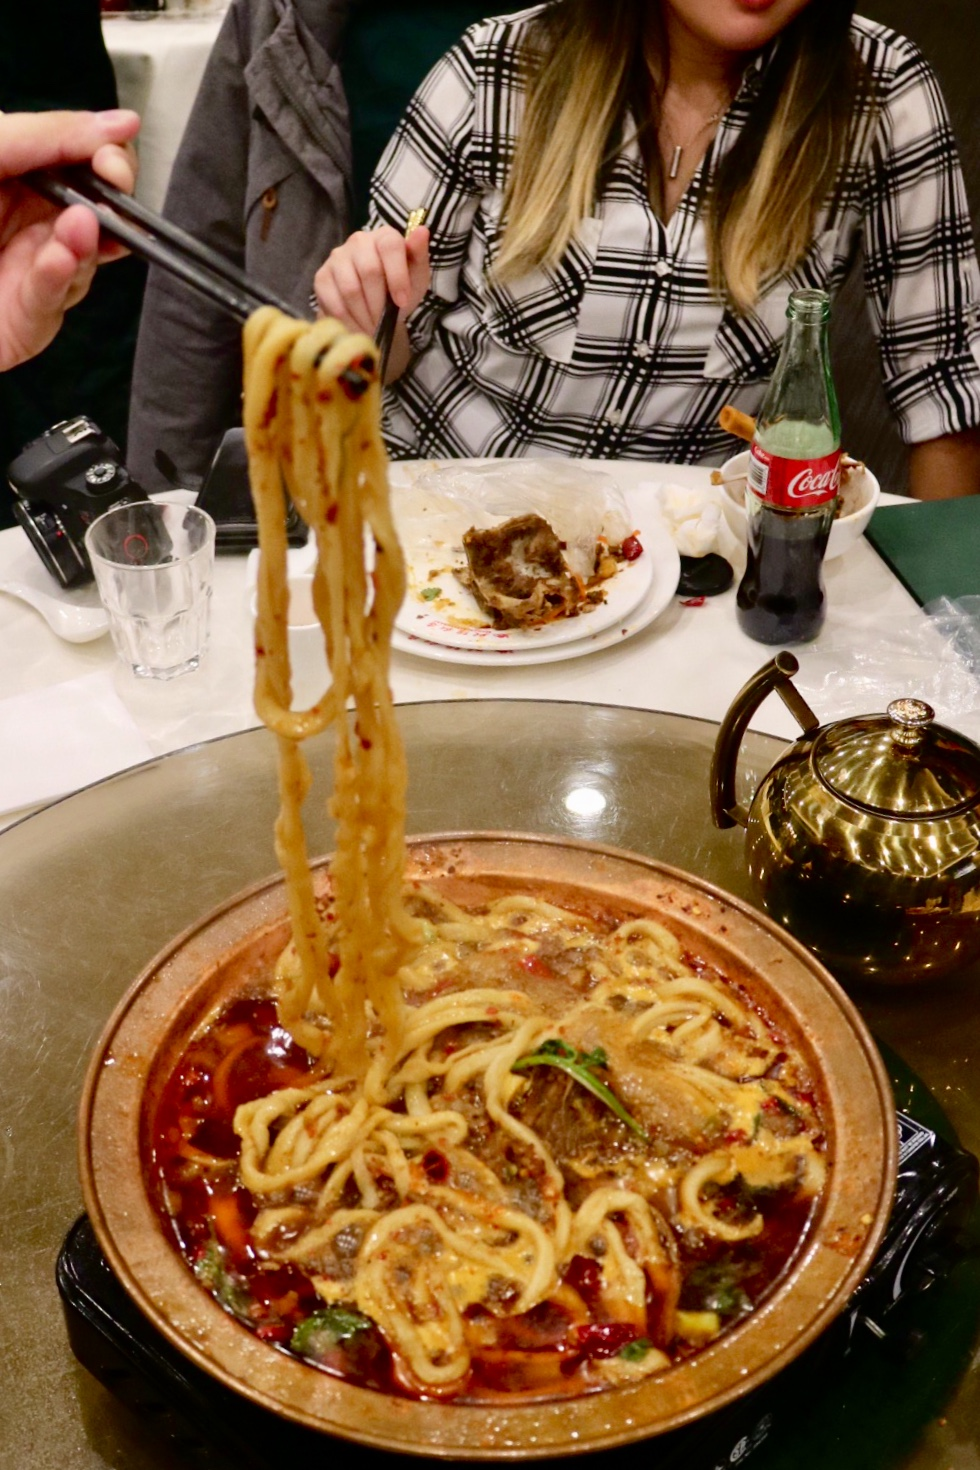 Lamb Bone Pot with Noodles